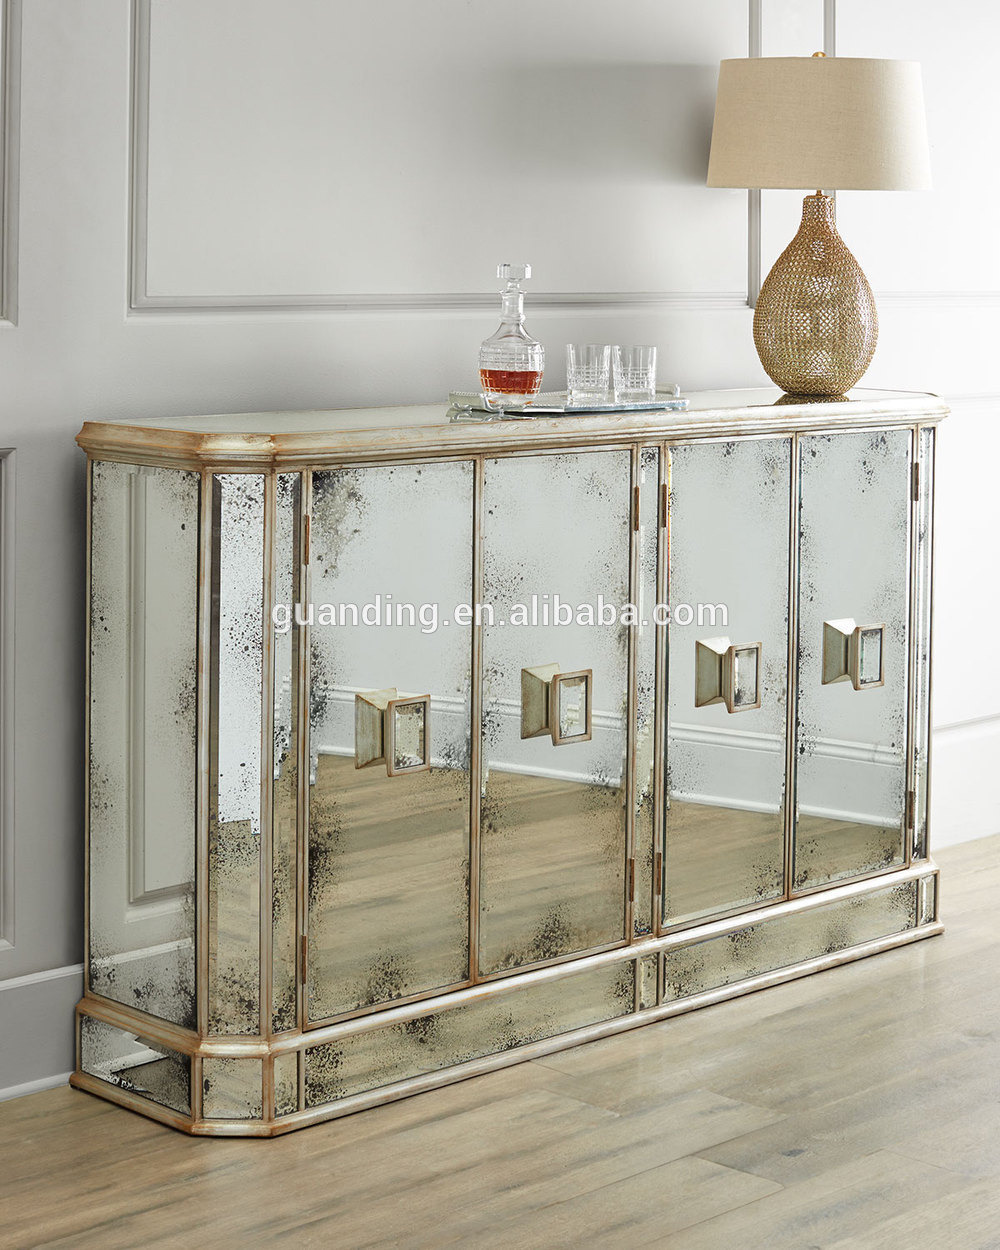 Mirrored Cabinet Doors Beautiful General Home Use Antique Shabby Chic Mirrored Cabinet Console with 4 Doors Buy Home Usecabinet Cabinet Mirrored Cabinet Product On Alibaba